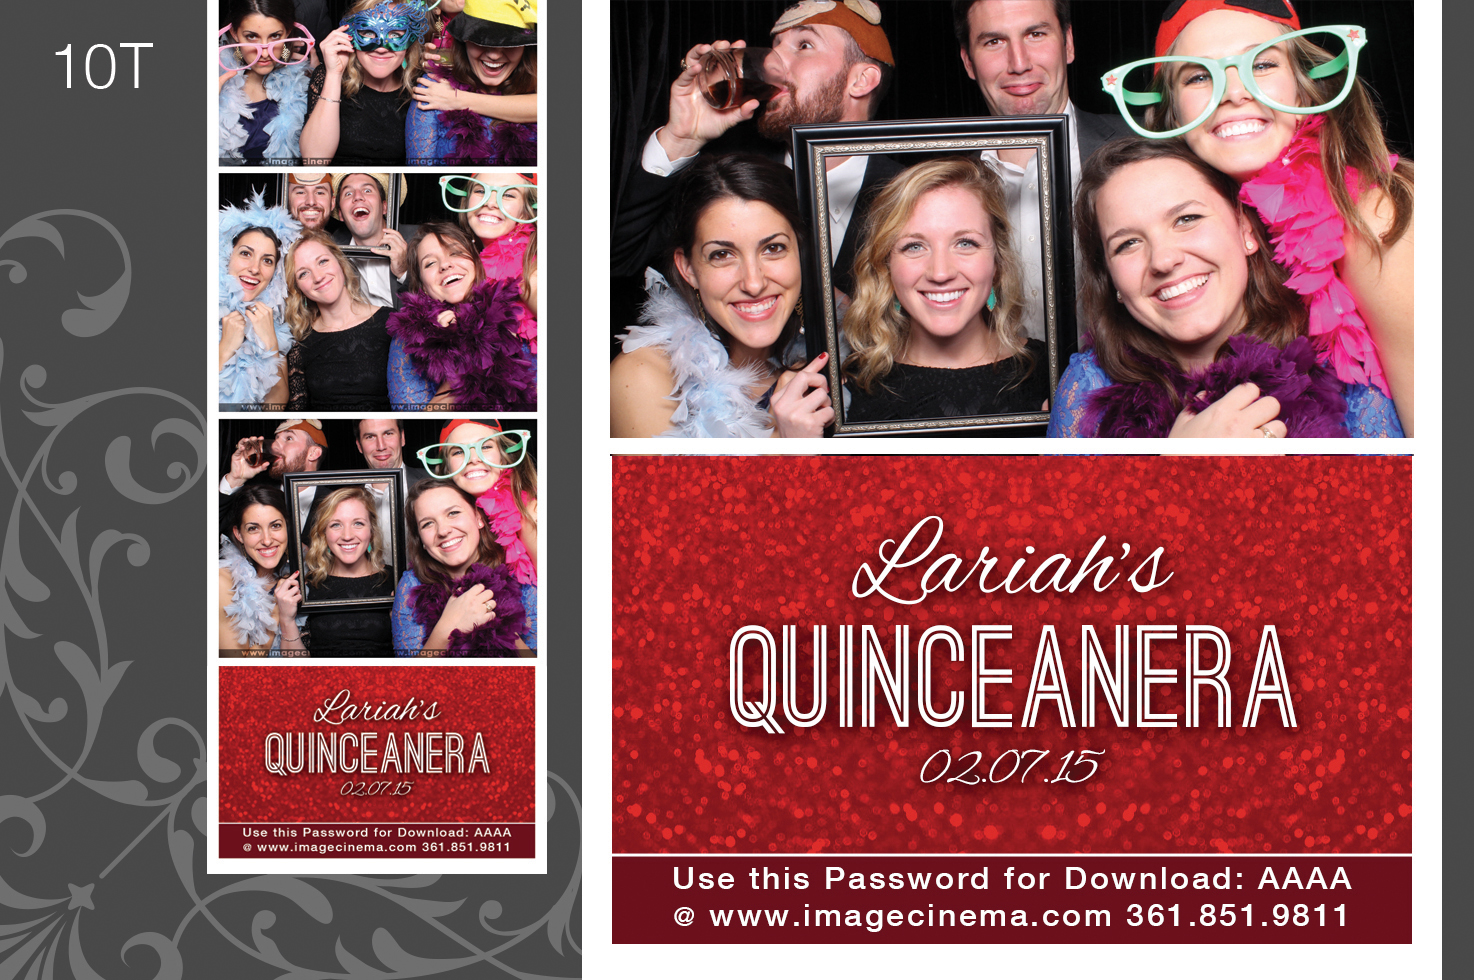 Photo Booth 10T